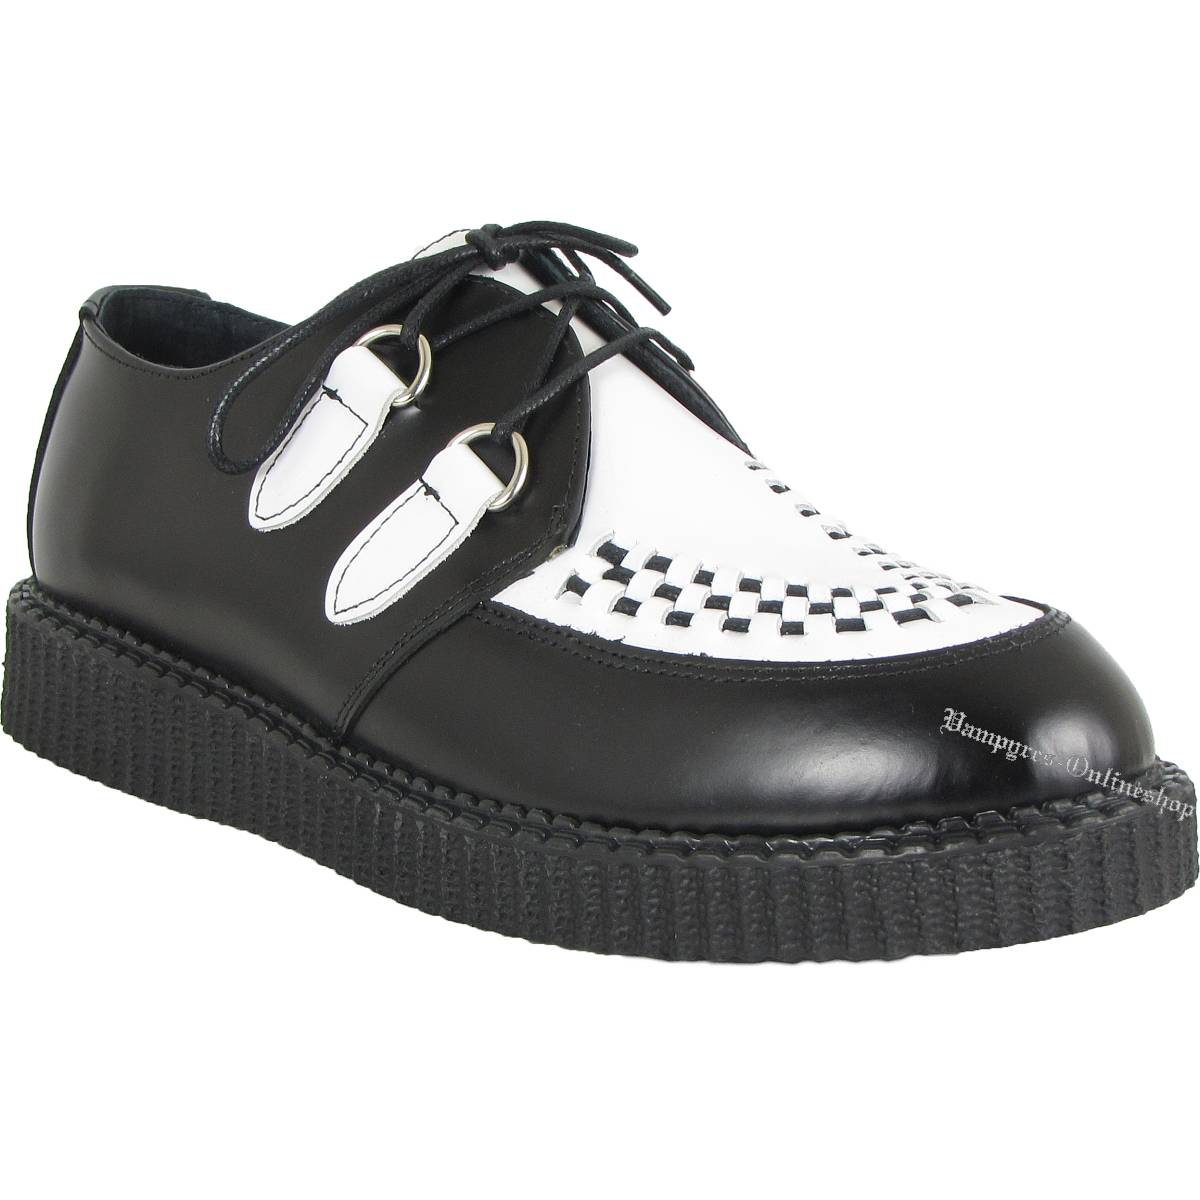 Boots & Braces Creeper New Schwarz Weiß Schuhe Creepers